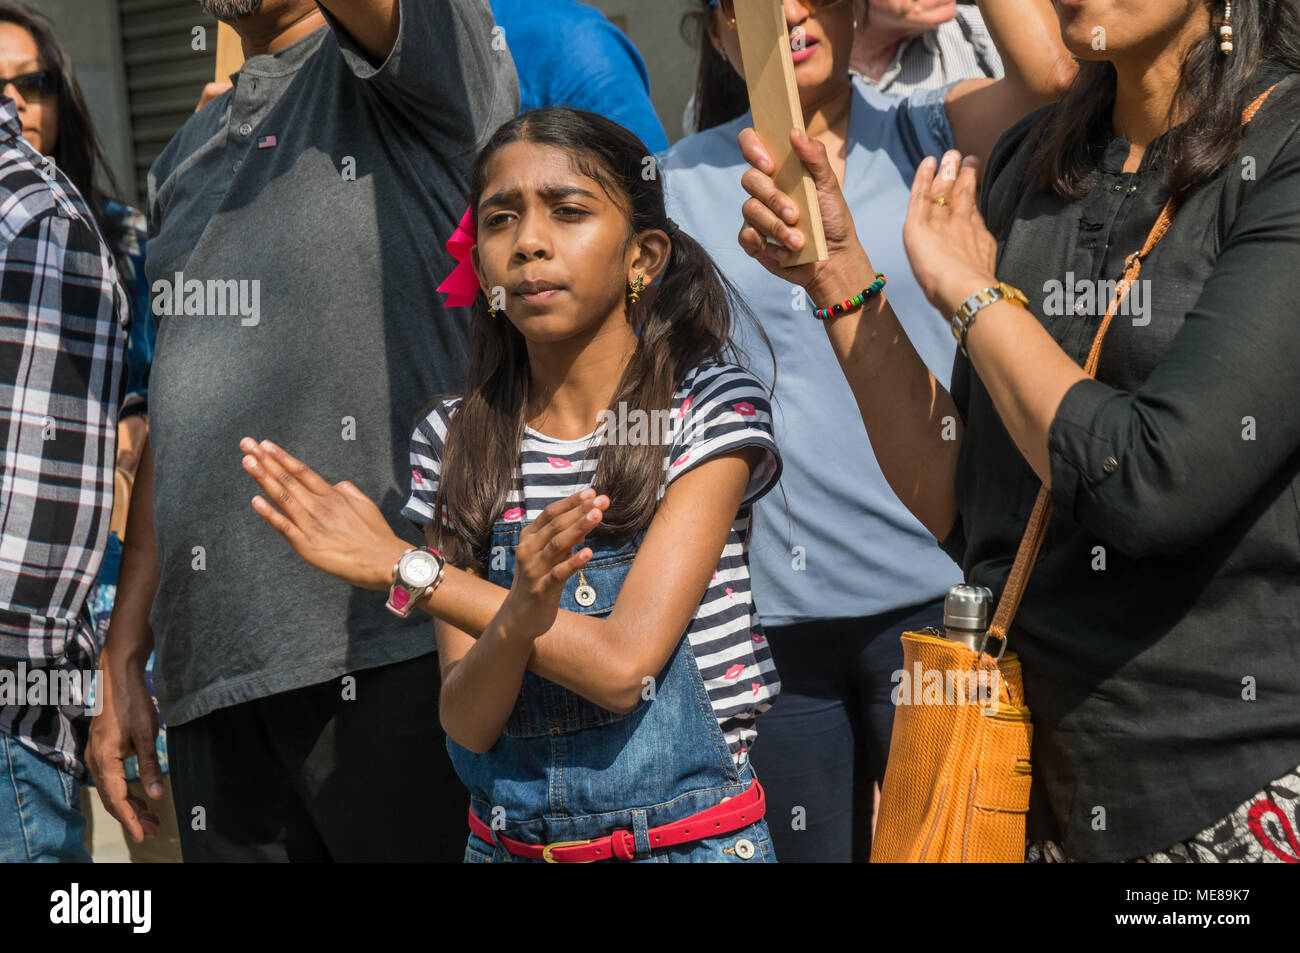 London, UK, 21 April 2018. London, UK. 21st April 2018. A young girl crosses her arms at the protest at India House calling for the Indian government to take effective action against the rape culture that they say has been encouraged by members of the ruling BJP party, leading to an increasing number of crimes against women. Credit: Peter Marshall/Alamy Live News - Stock Image